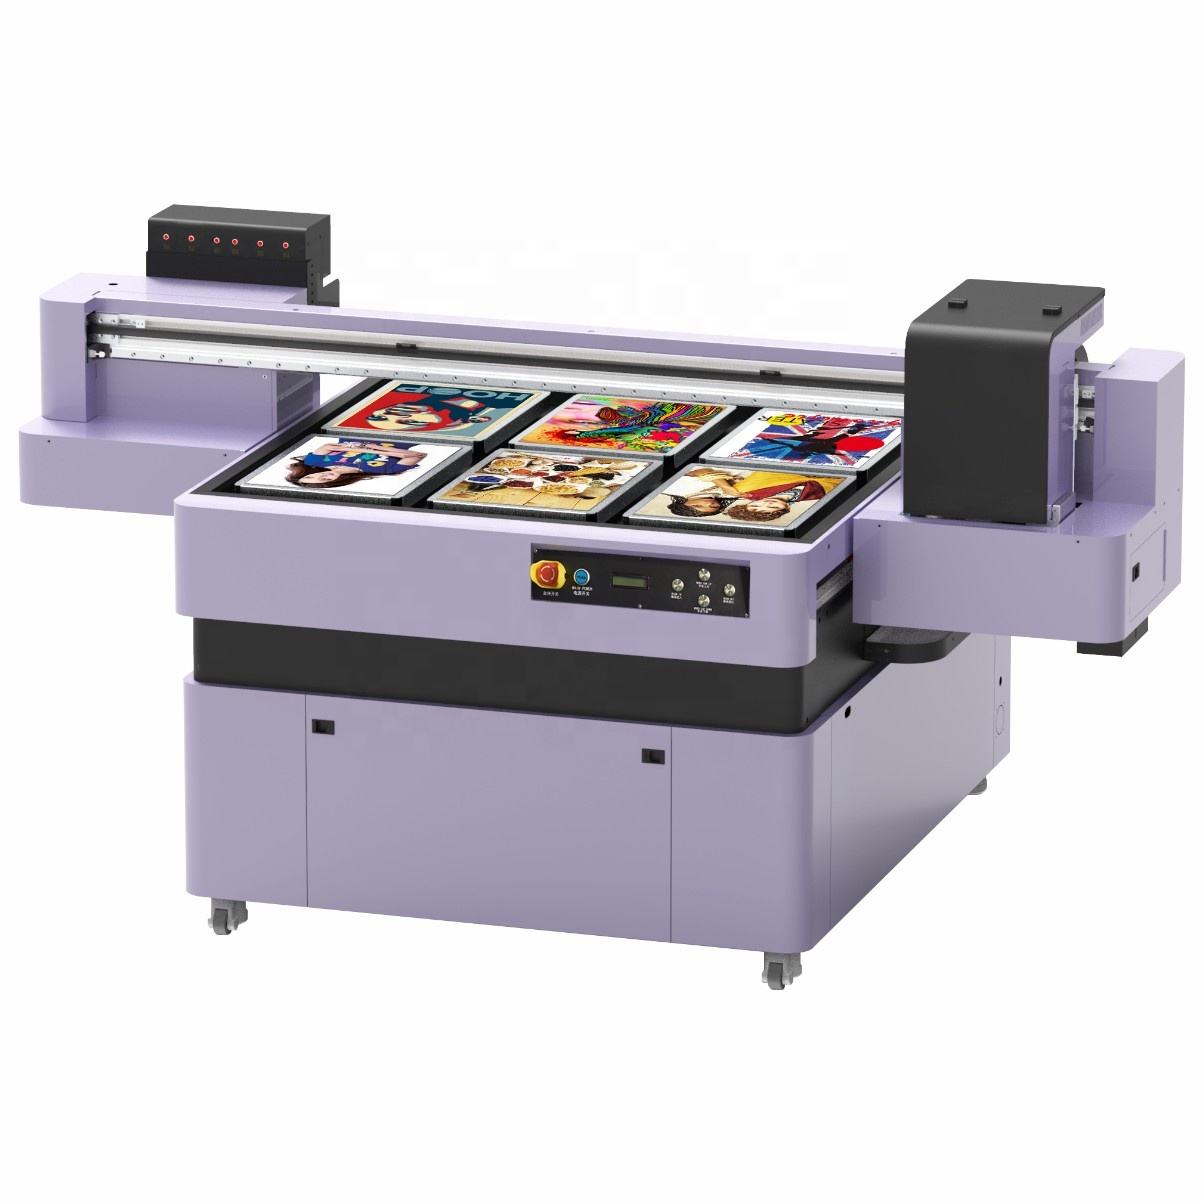 Factory Outlets Wide Format 120*90 Cotton Printing Machine High Definition Dtg Printer T-Shirt Textile Printing Two Print Heads